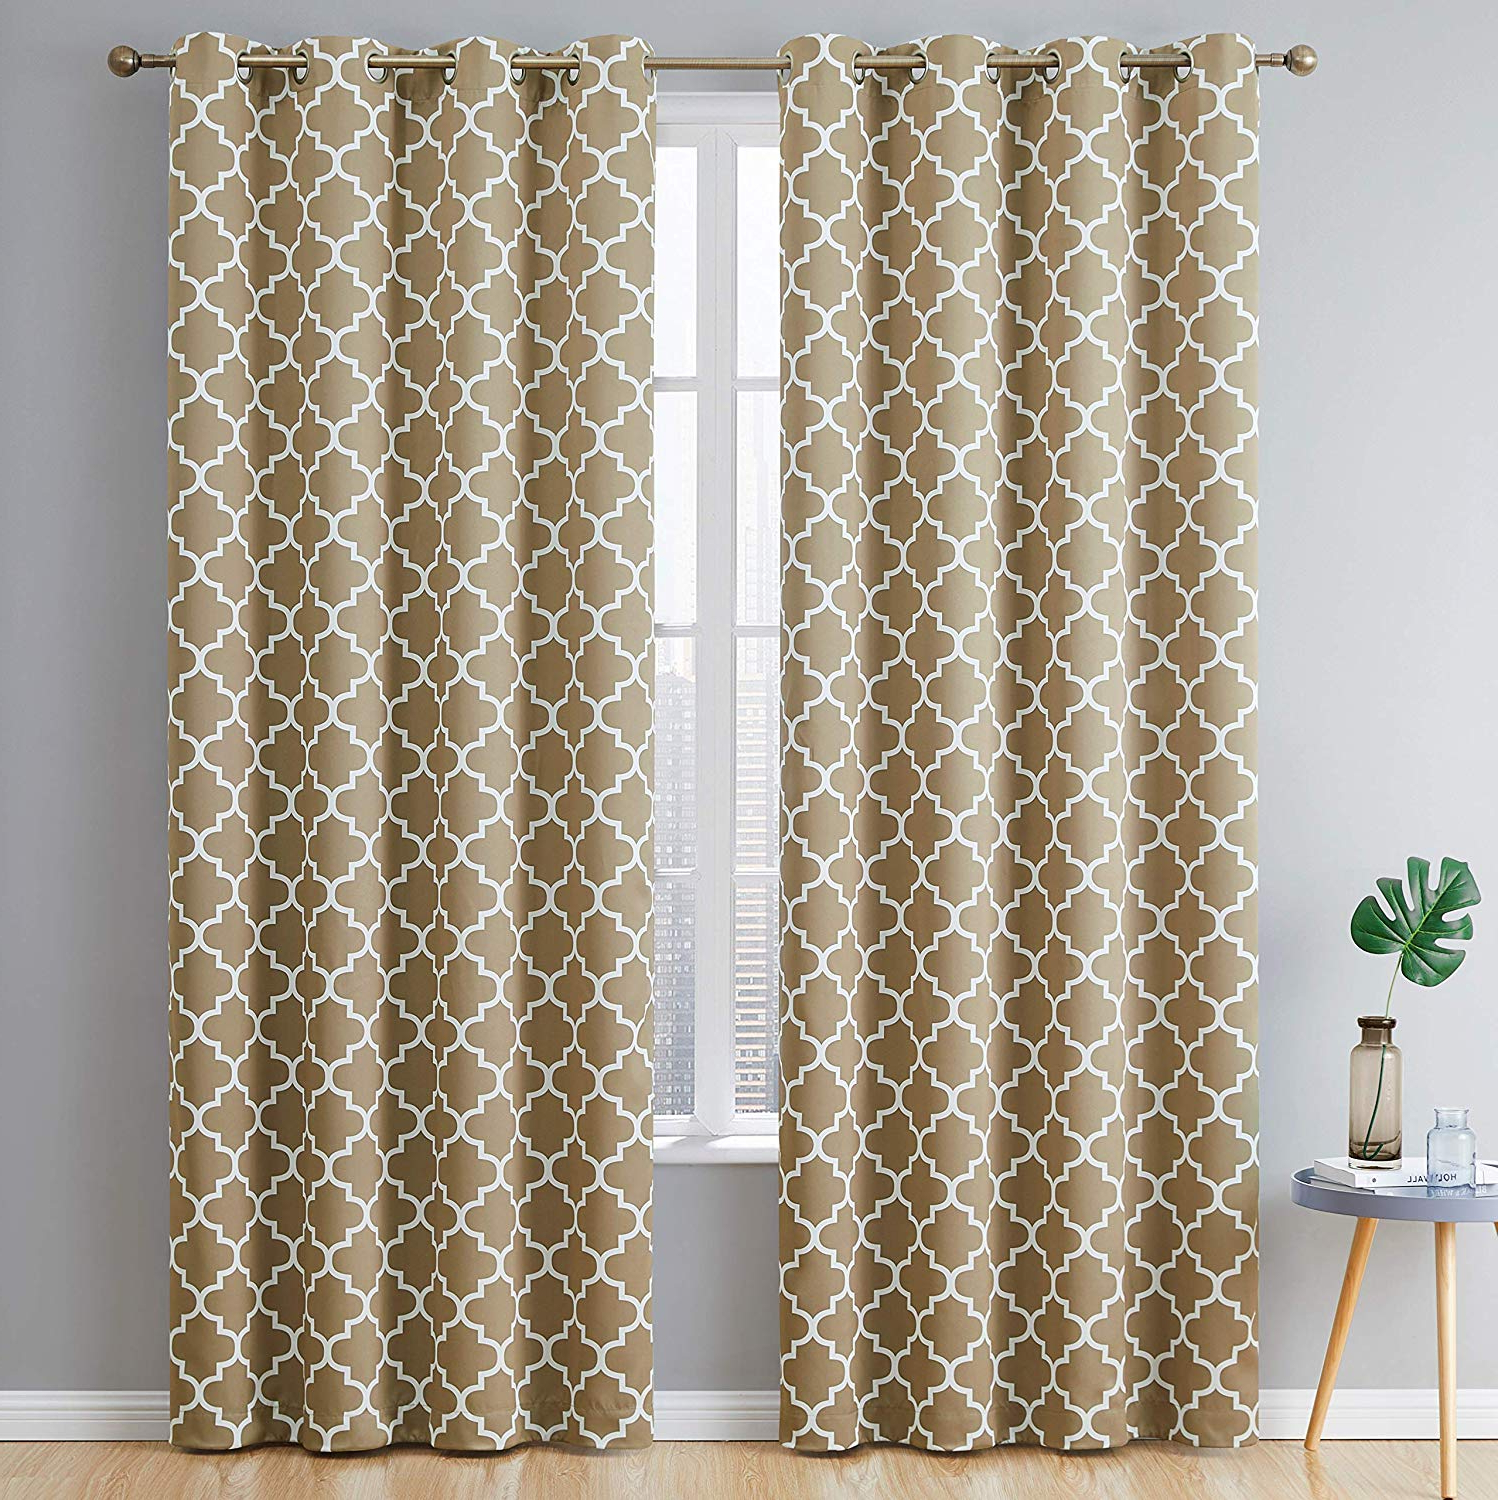 Insulated Thermal Blackout Curtain Panel Pairs Within Best And Newest Hlc Lattice Print Thermal Insulated Blackout Window Curtain Panels, Pair, Chrome Grommet Top, Taupe (View 18 of 20)